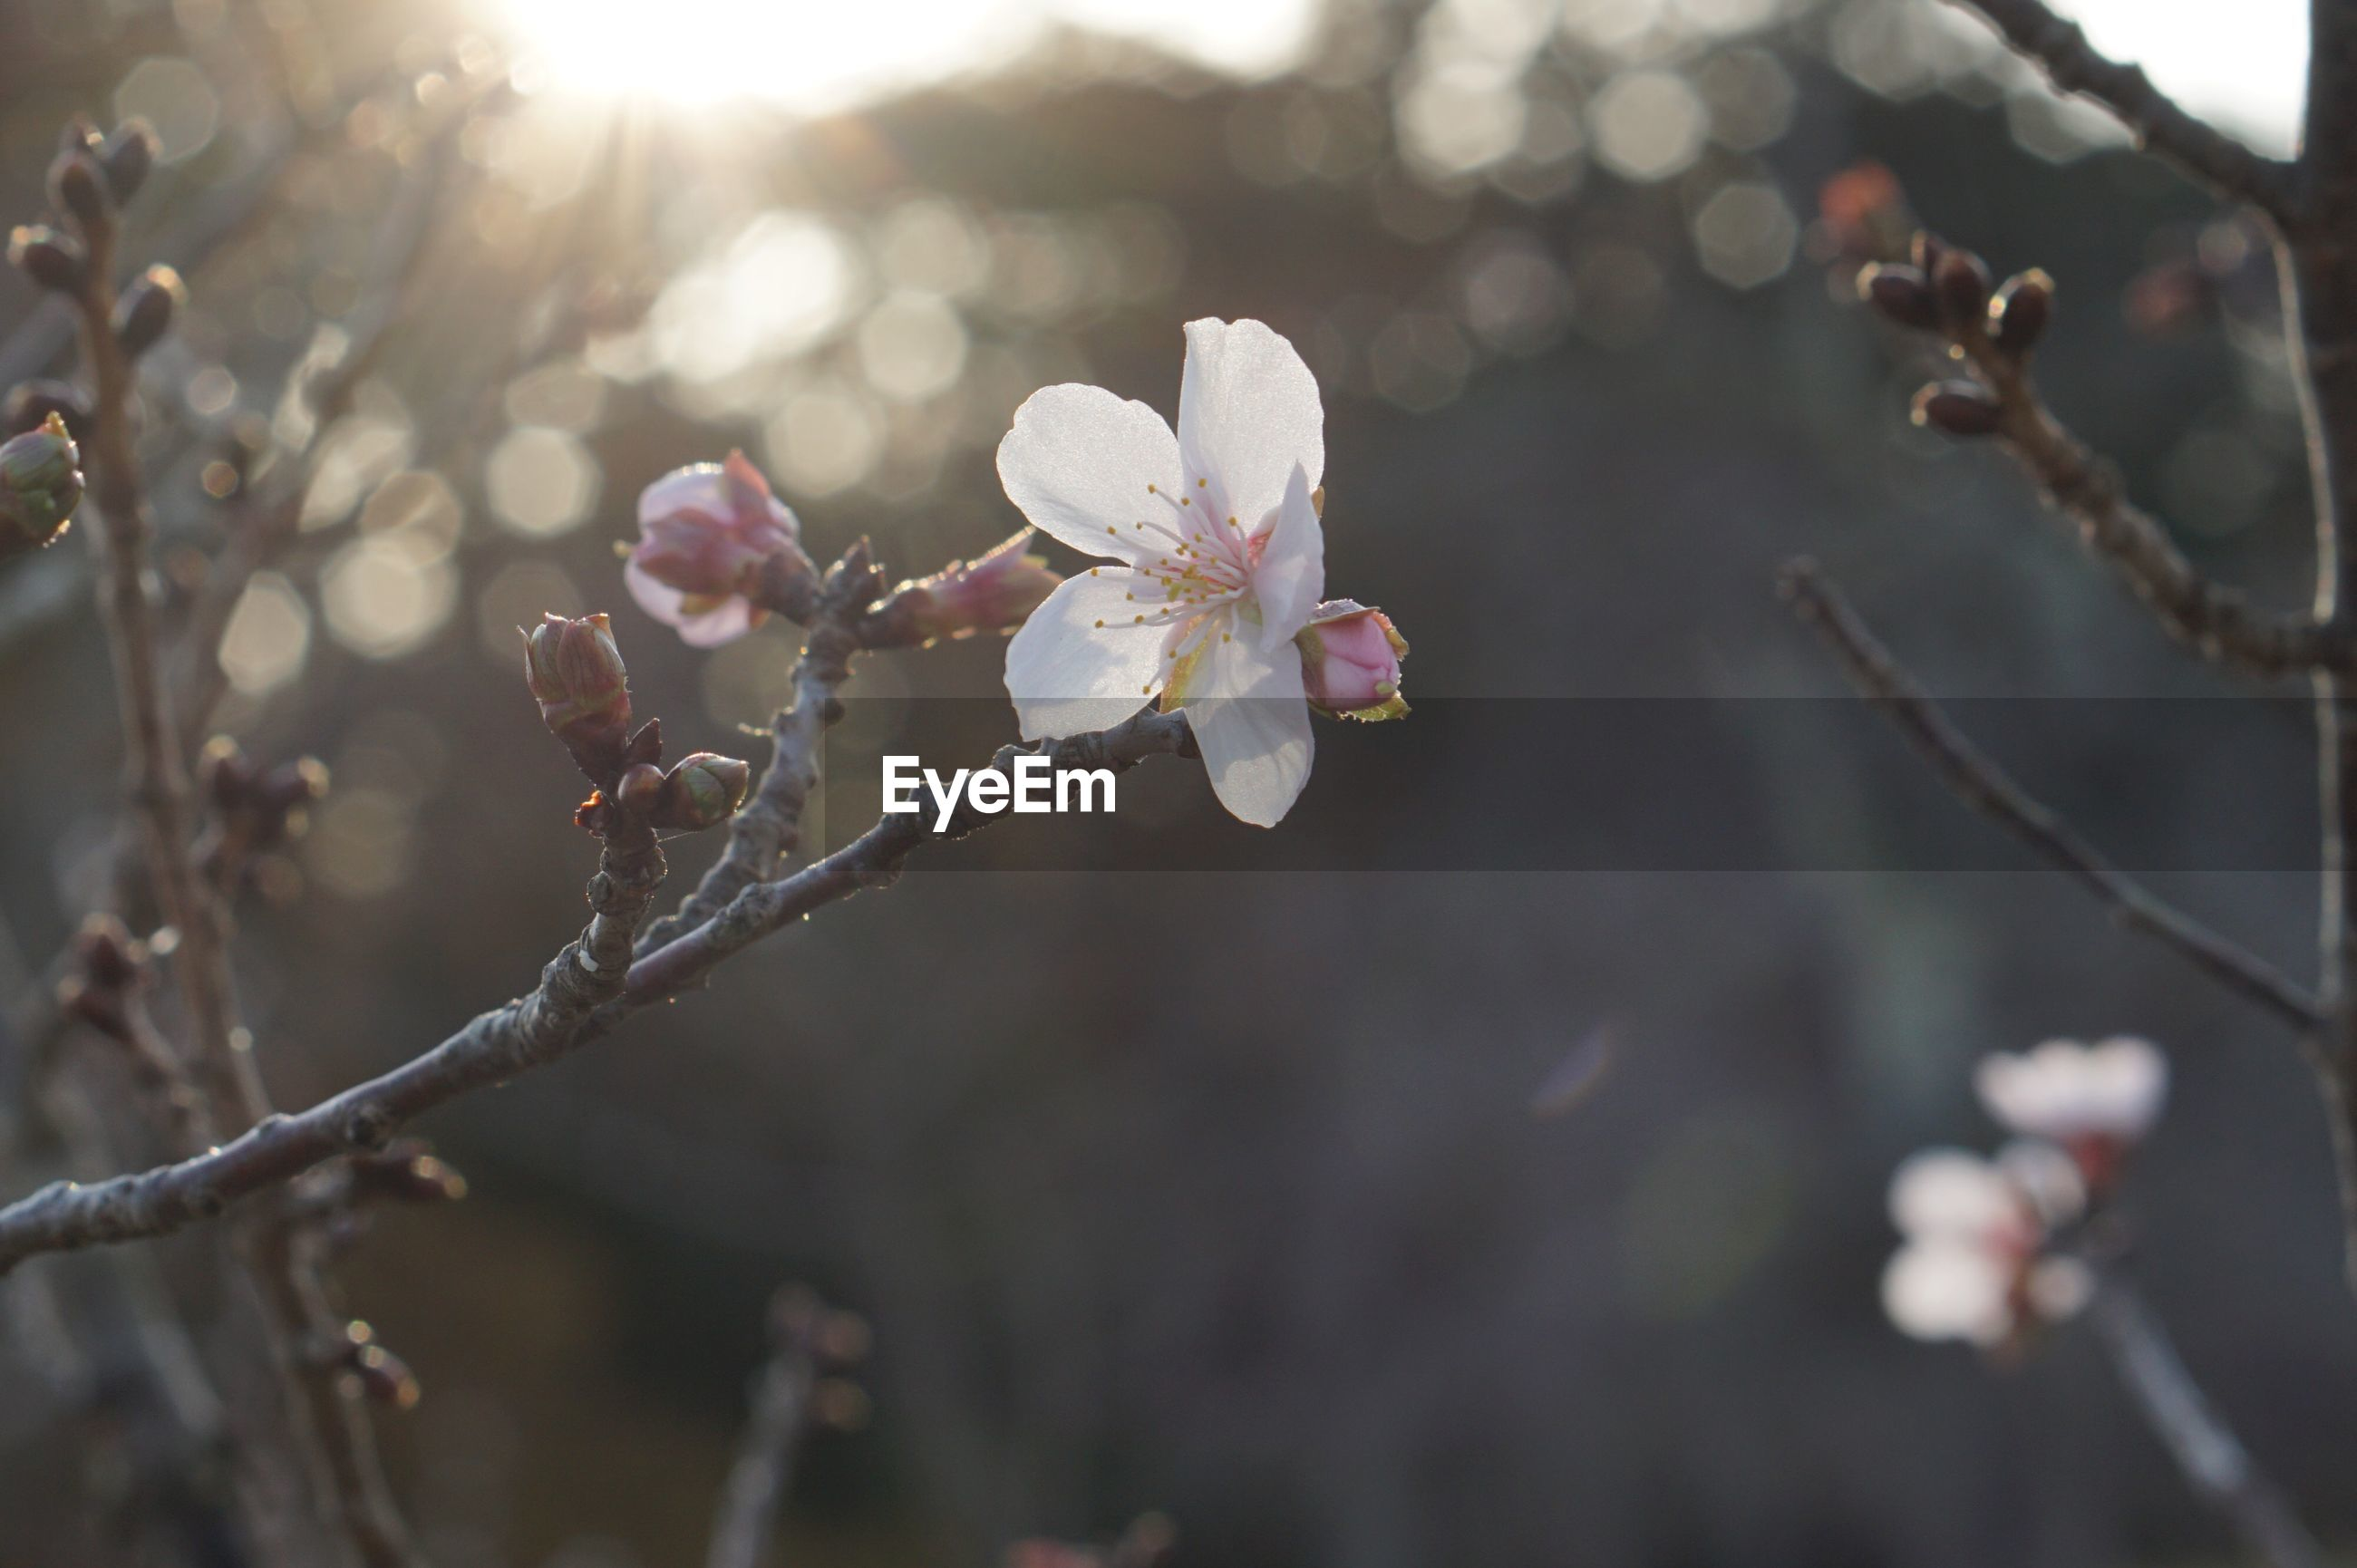 plant, flower, flowering plant, beauty in nature, growth, fragility, vulnerability, close-up, focus on foreground, freshness, day, branch, nature, petal, tree, no people, blossom, twig, outdoors, inflorescence, flower head, springtime, cherry blossom, pollen, plum blossom, cherry tree, spring